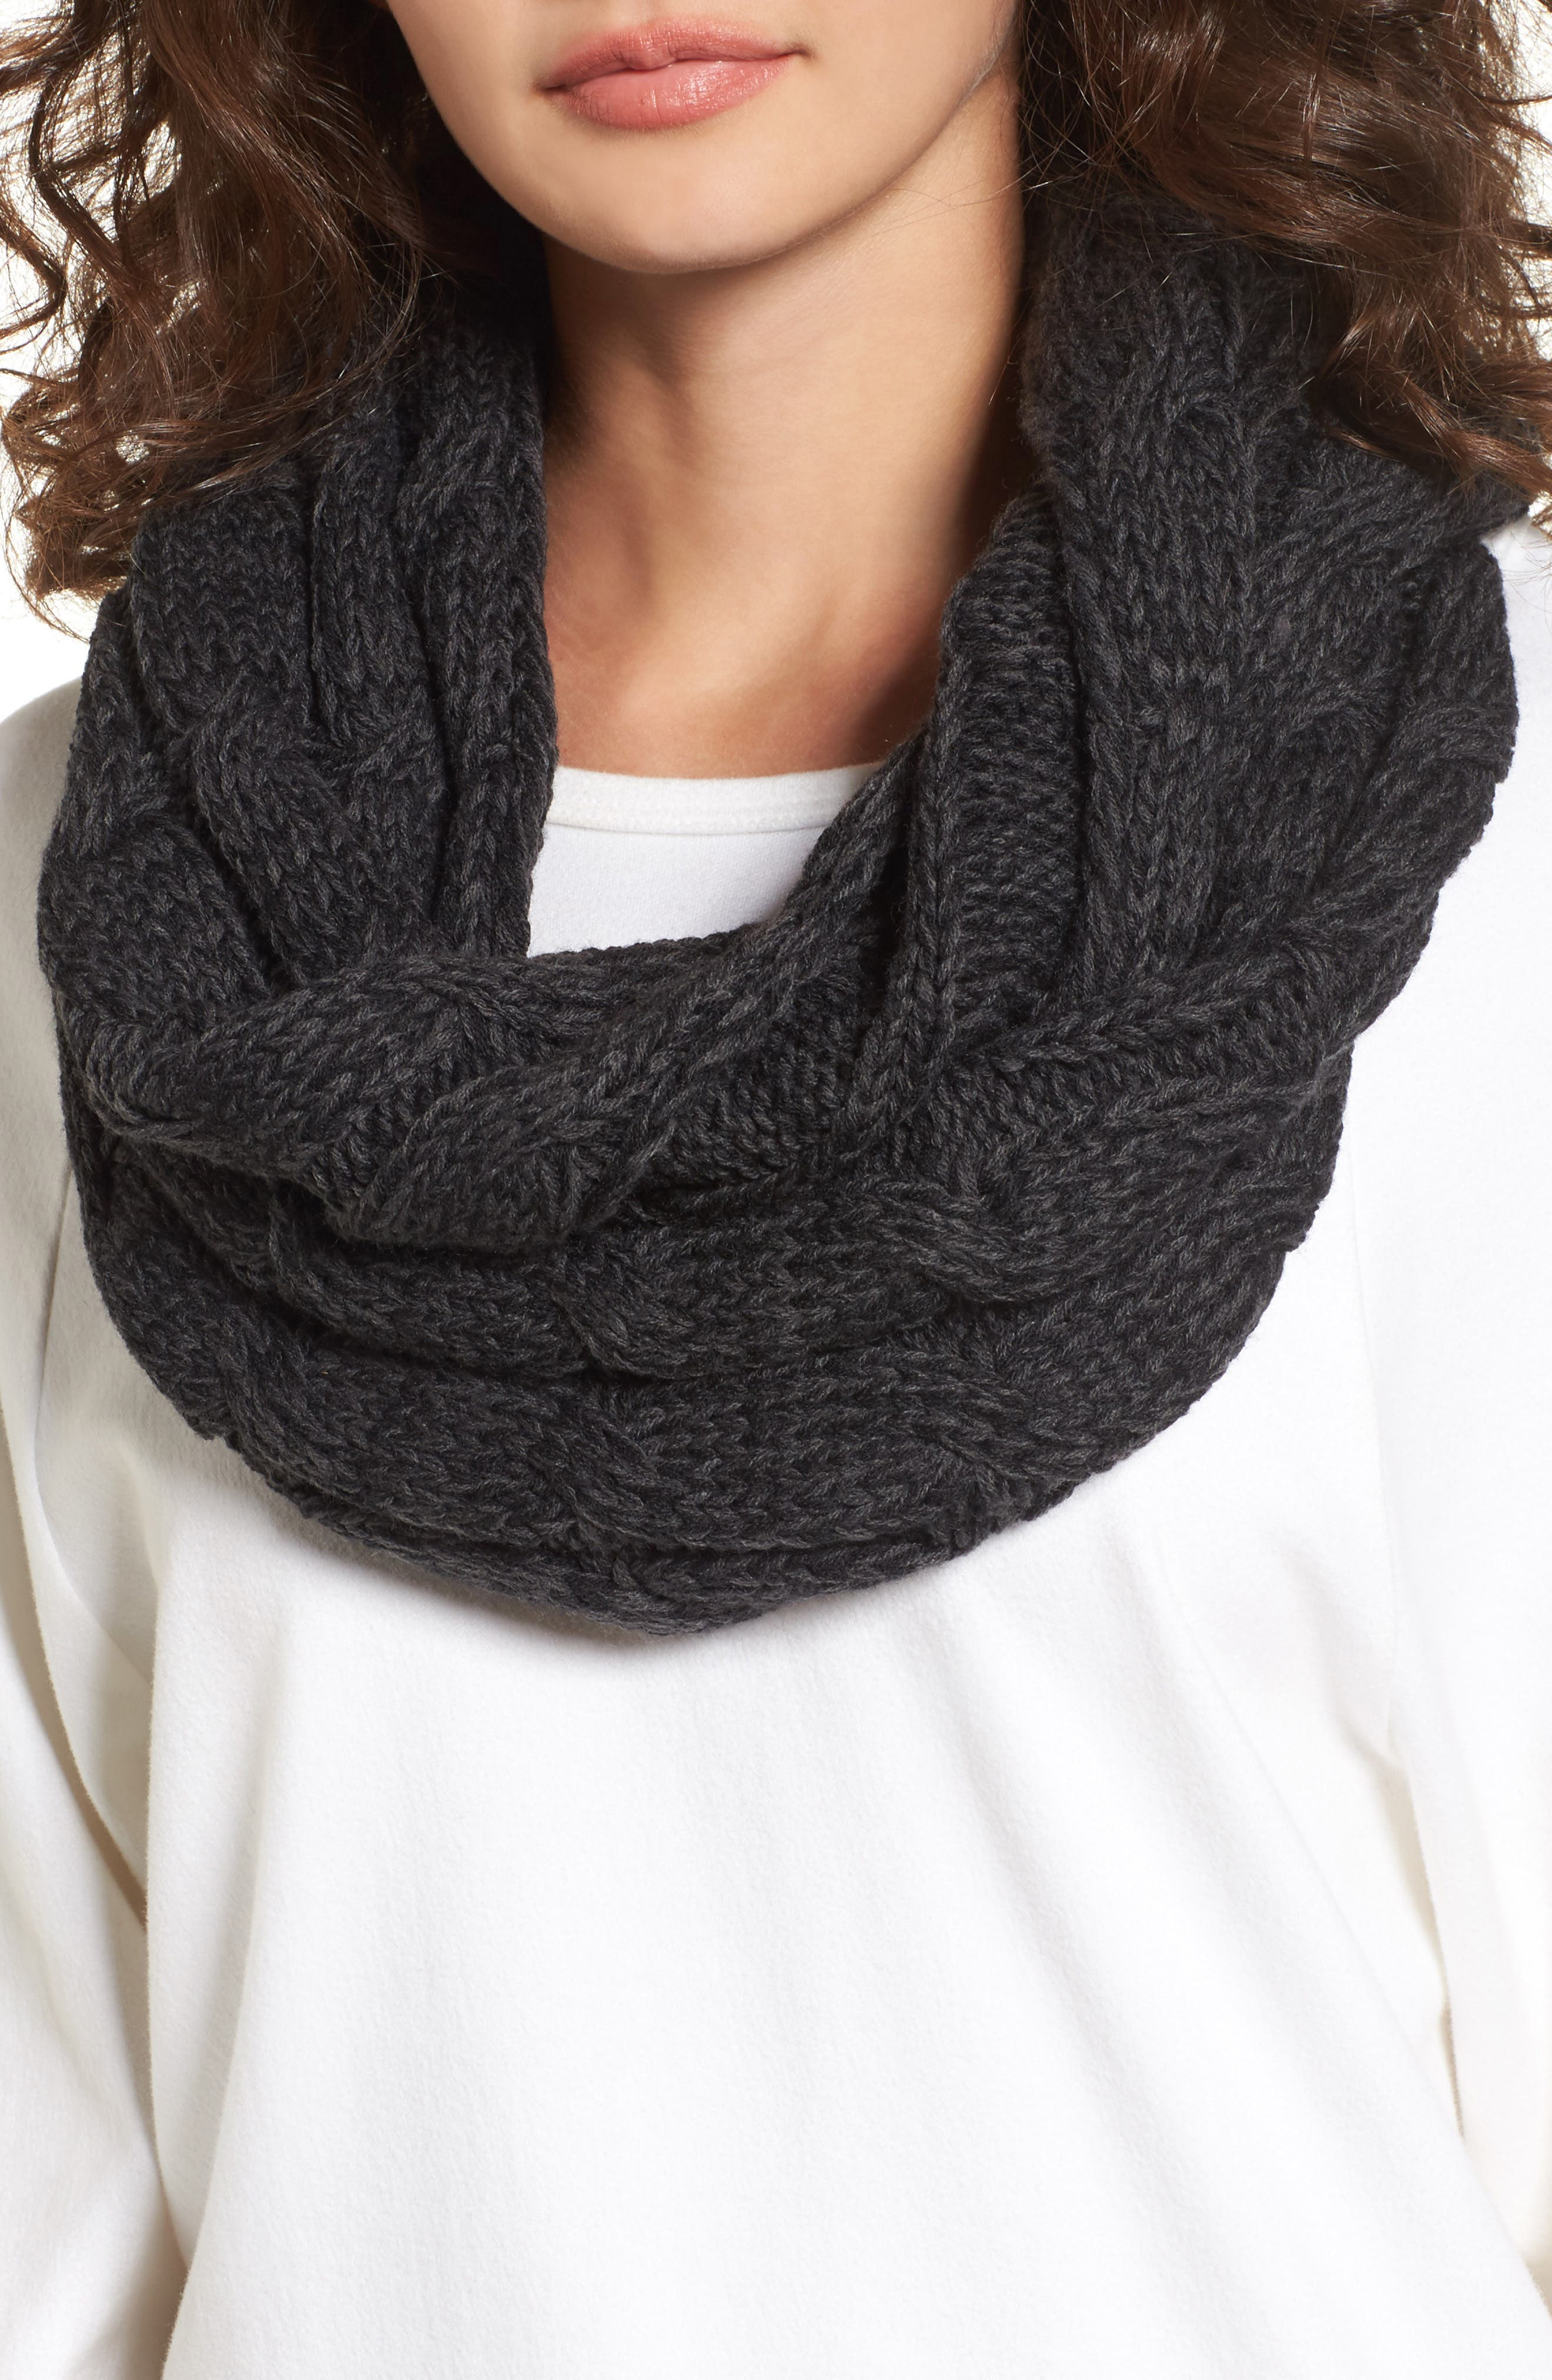 Knit Infinity Scarf,                             Main thumbnail 1, color,                             Black/ Grey